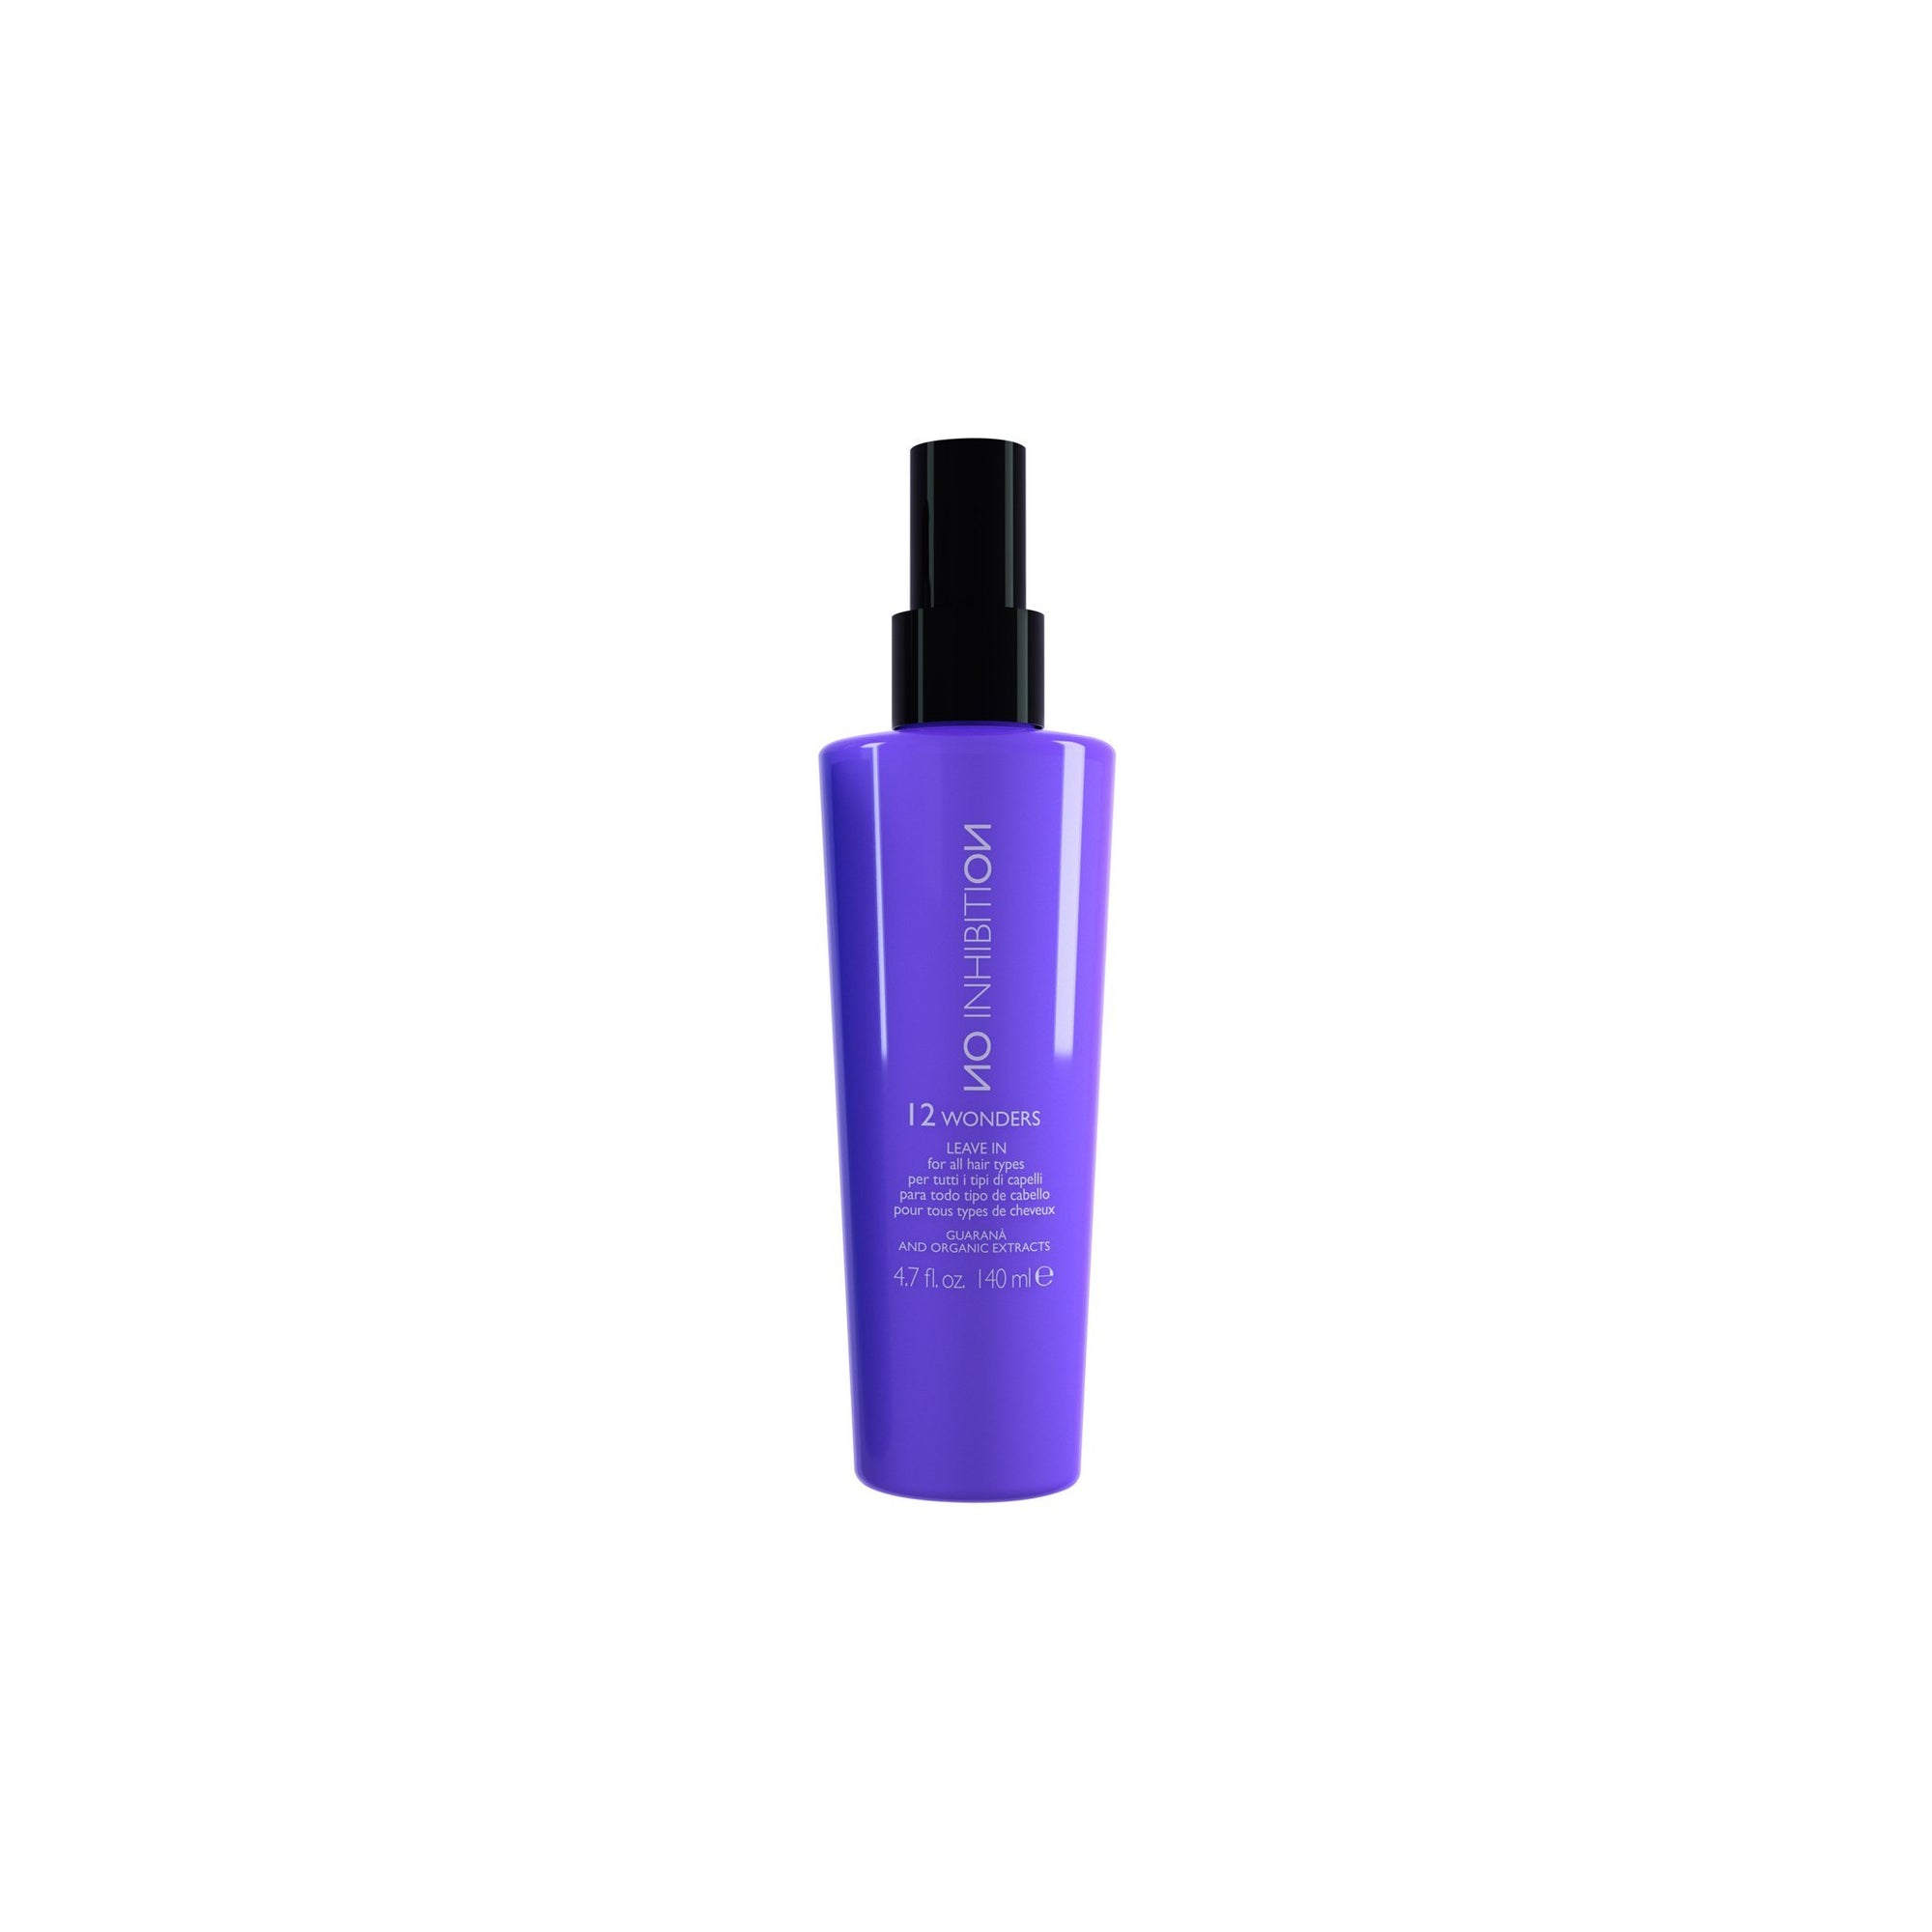 No Inhibition 12 Wonders 150ml